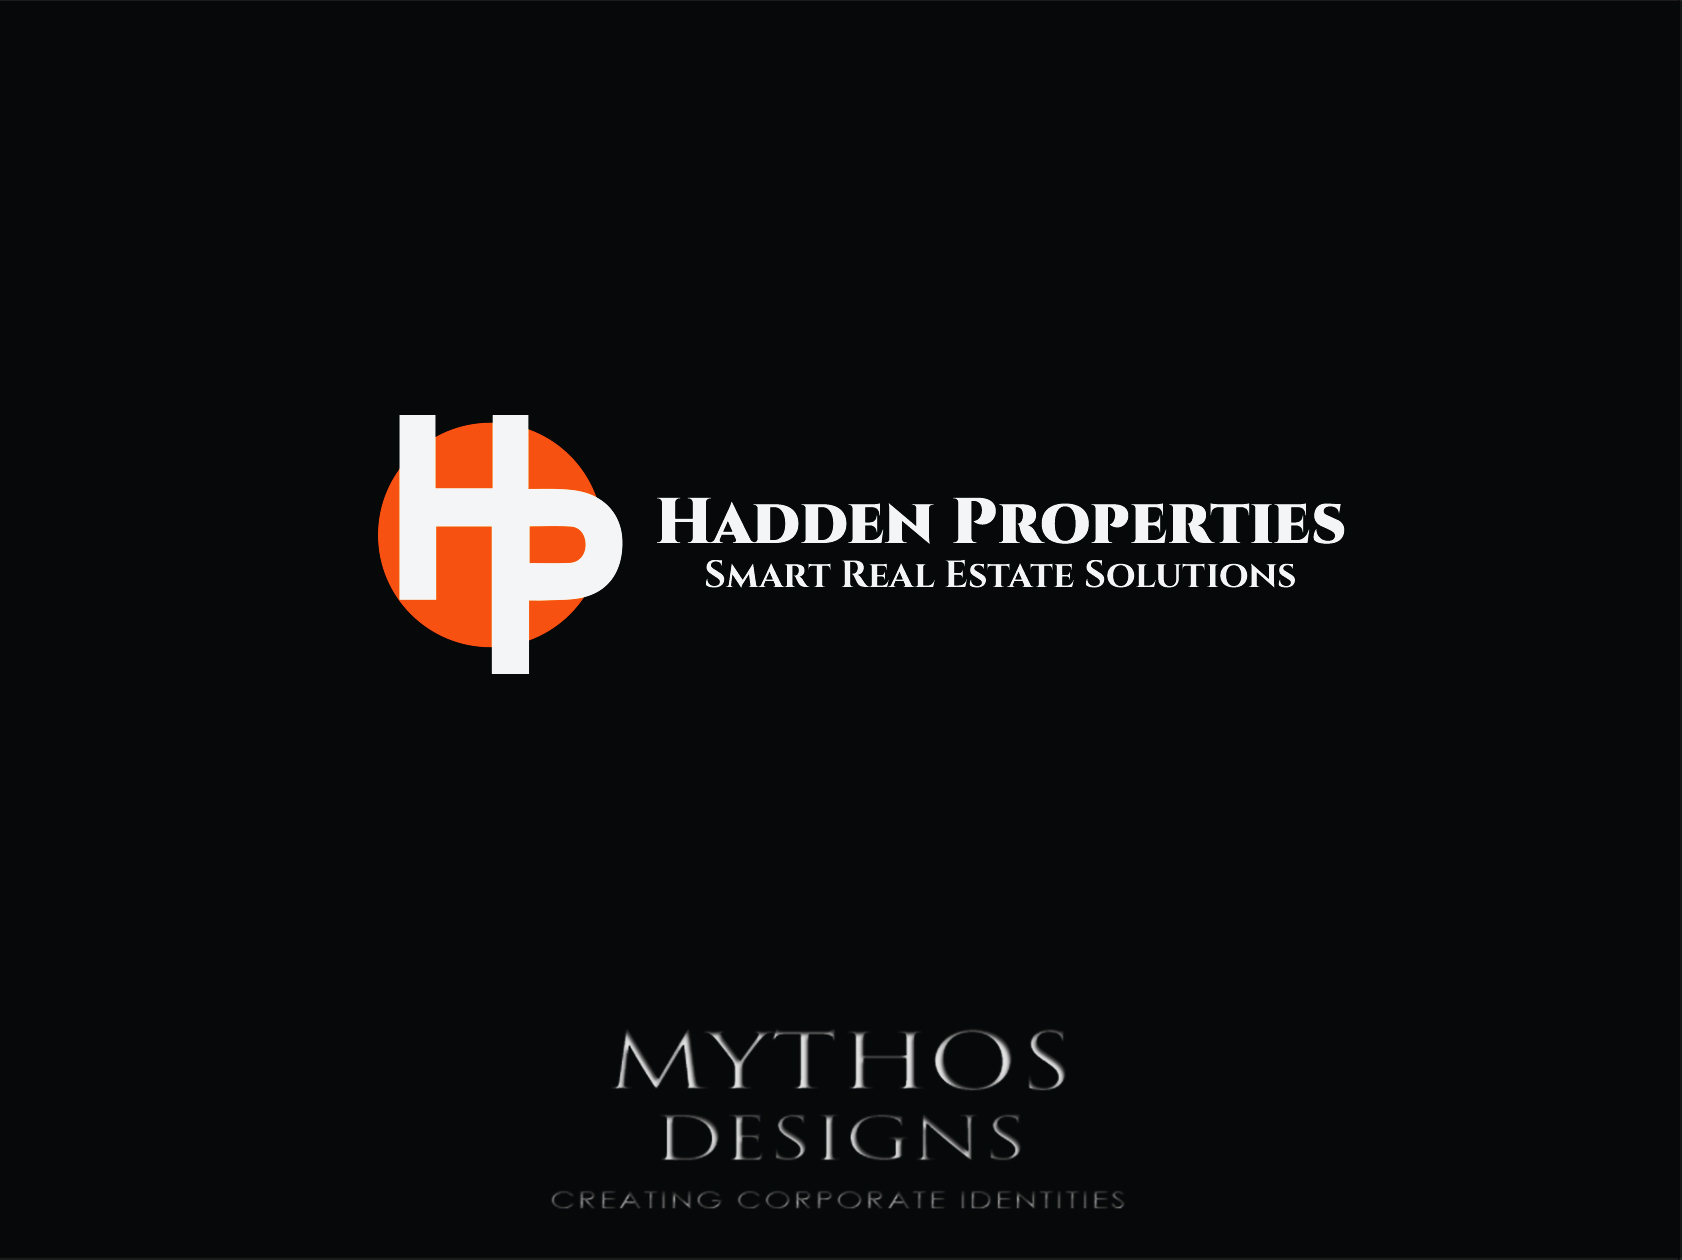 Logo Design by Mythos Designs - Entry No. 67 in the Logo Design Contest Artistic Logo Design for Hadden Properties.